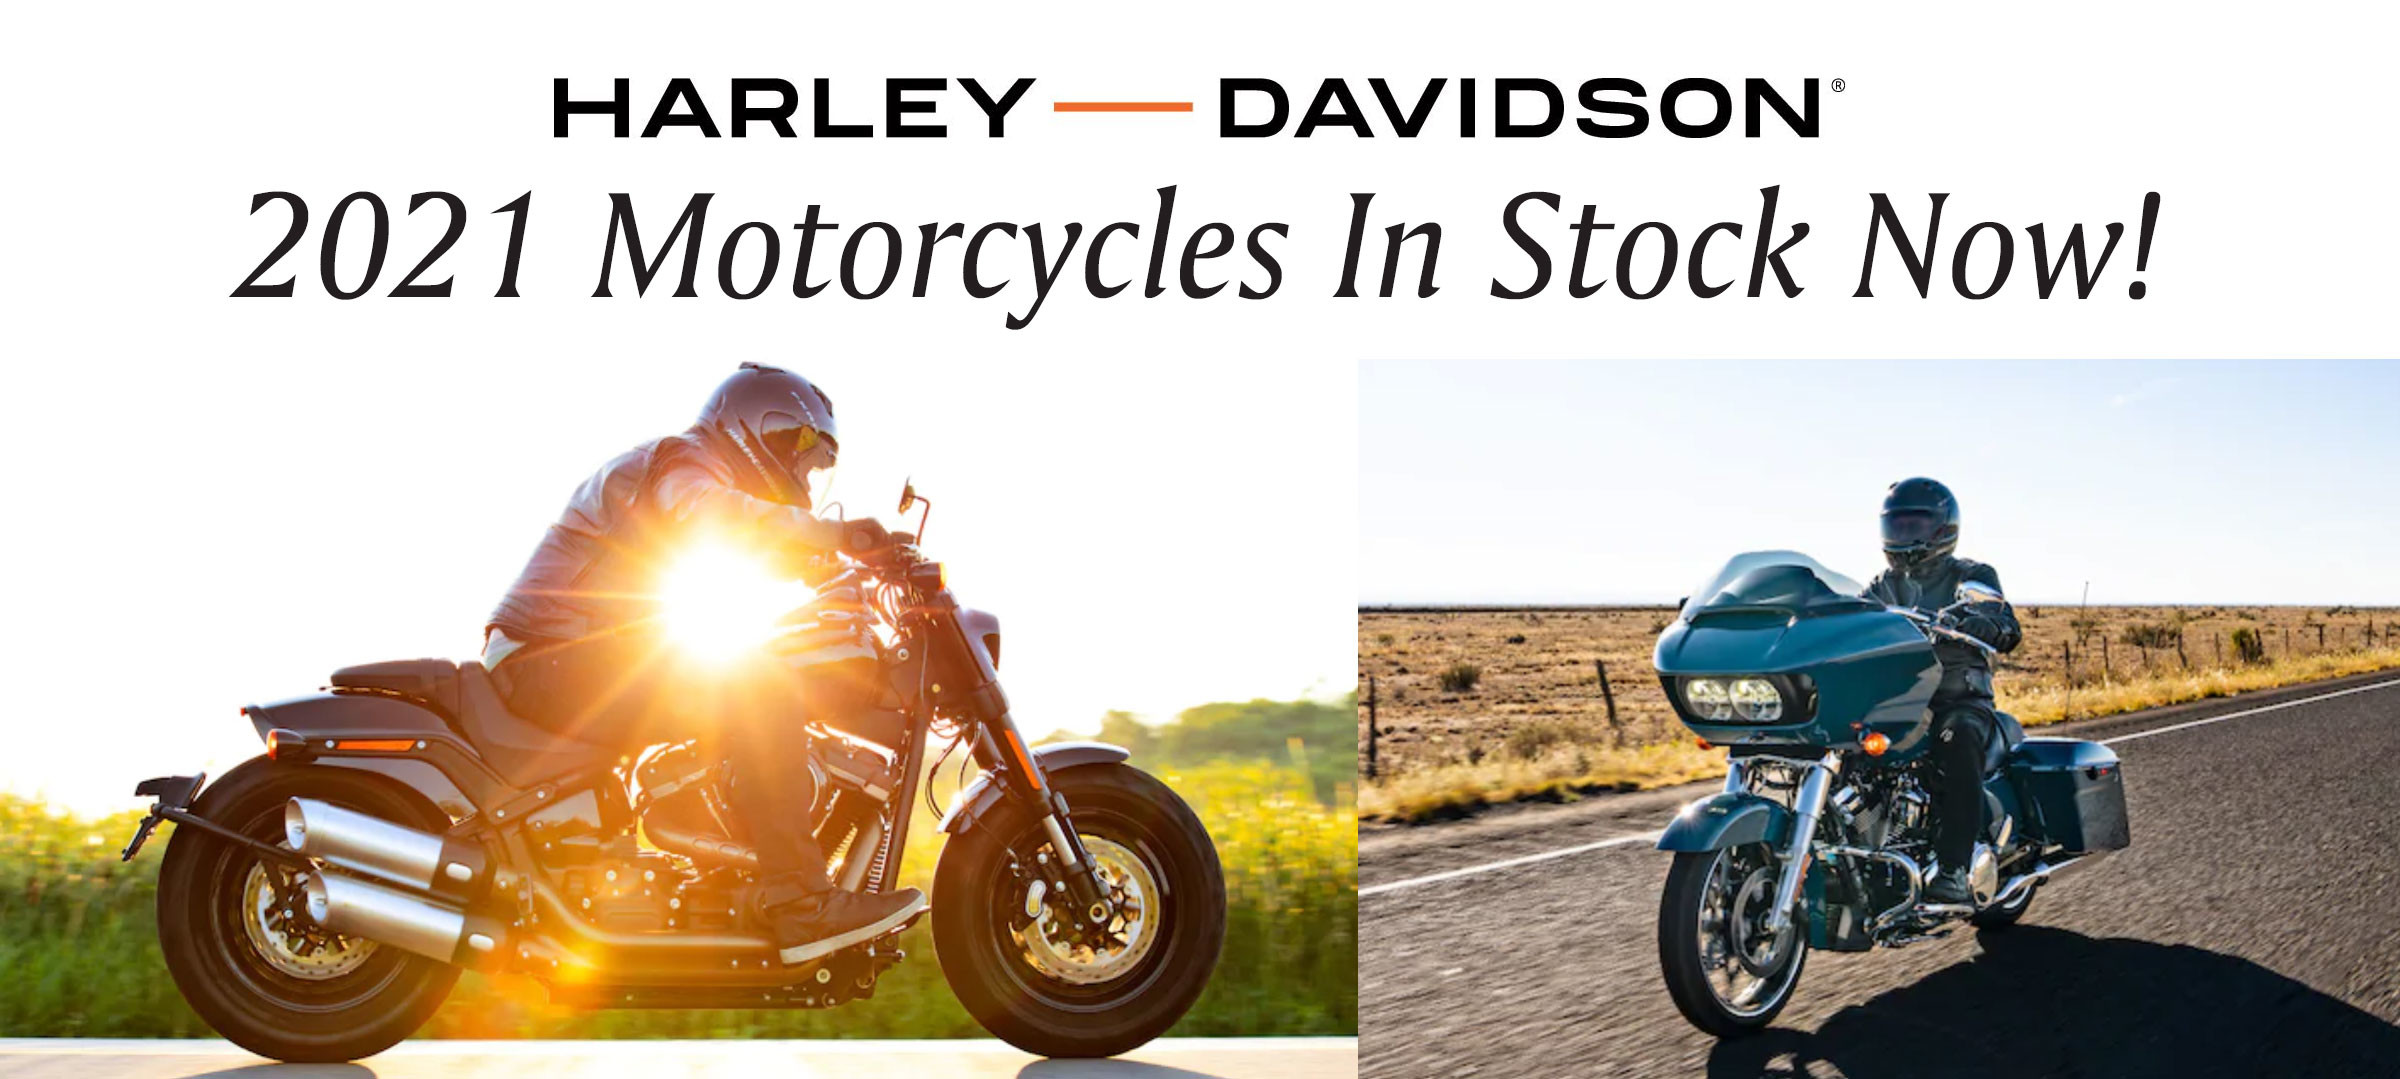 2021 Motorcycles In Stock Now